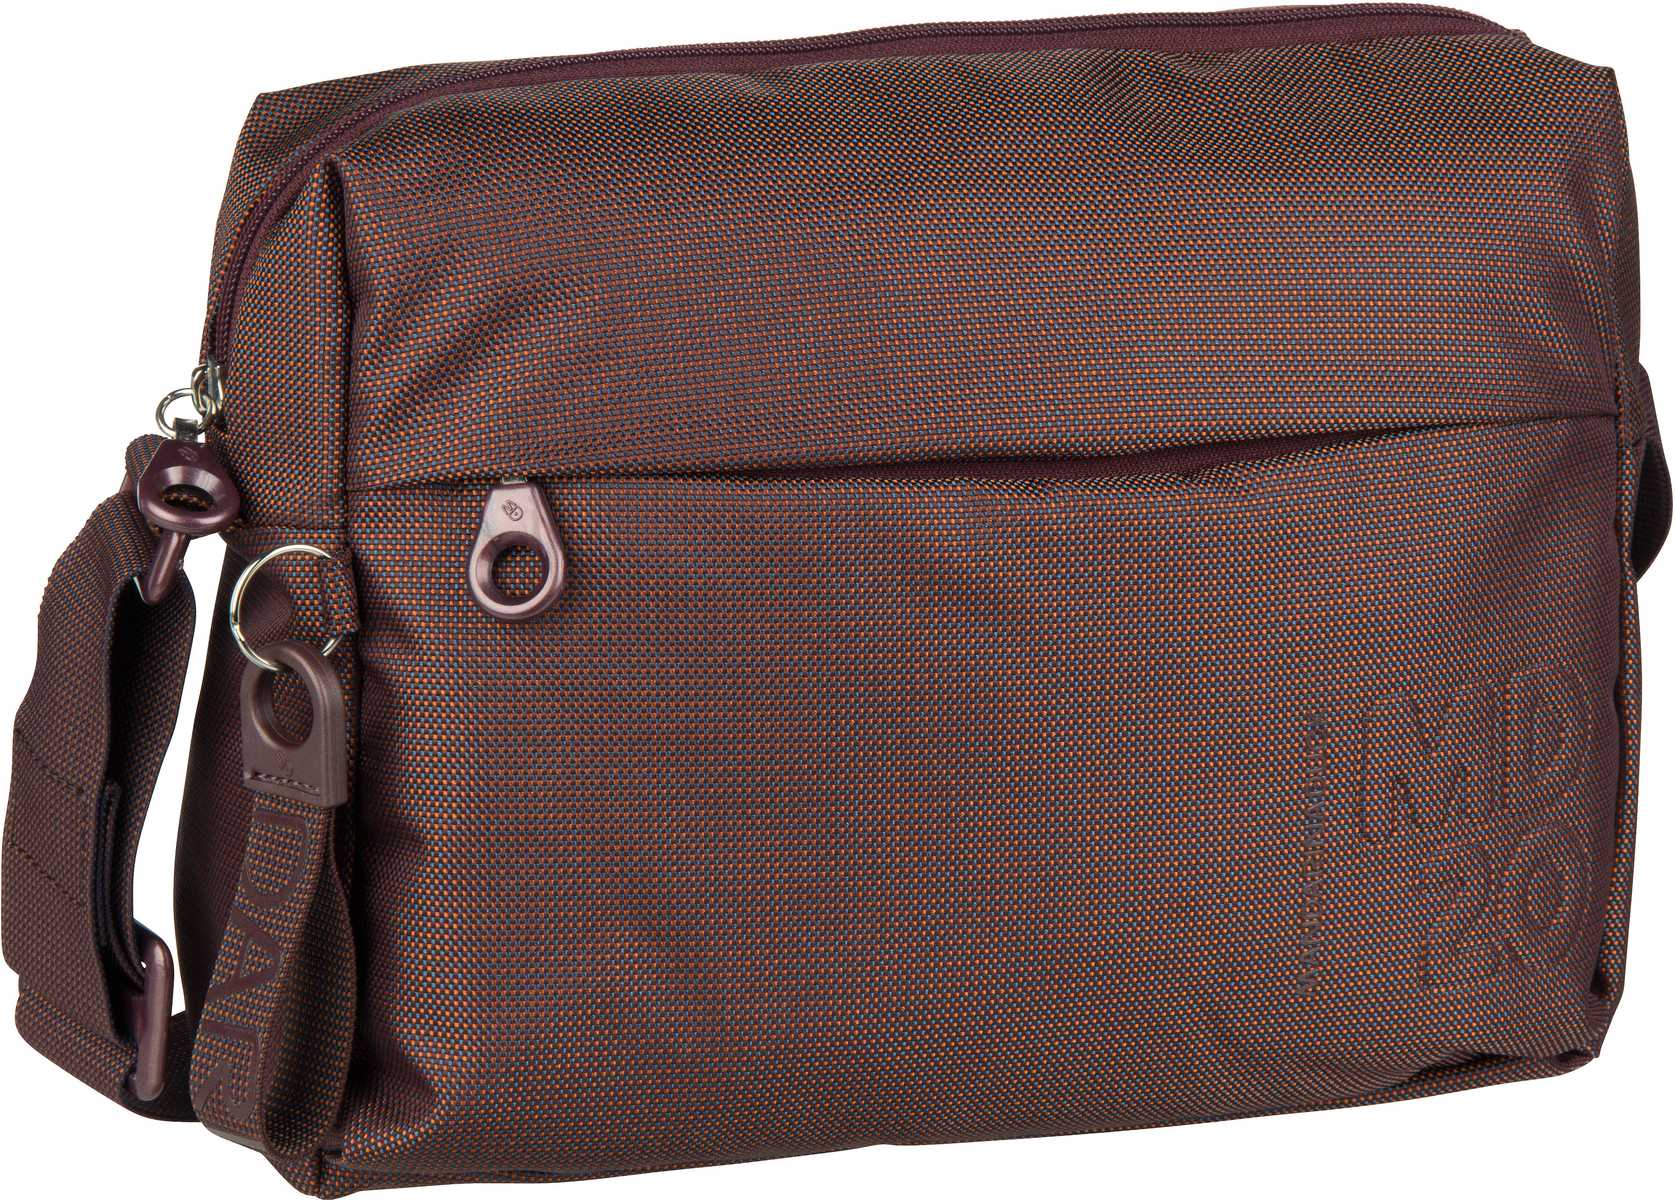 Umhängetasche MD20 Crossover Bag QMTV8 Balsamic